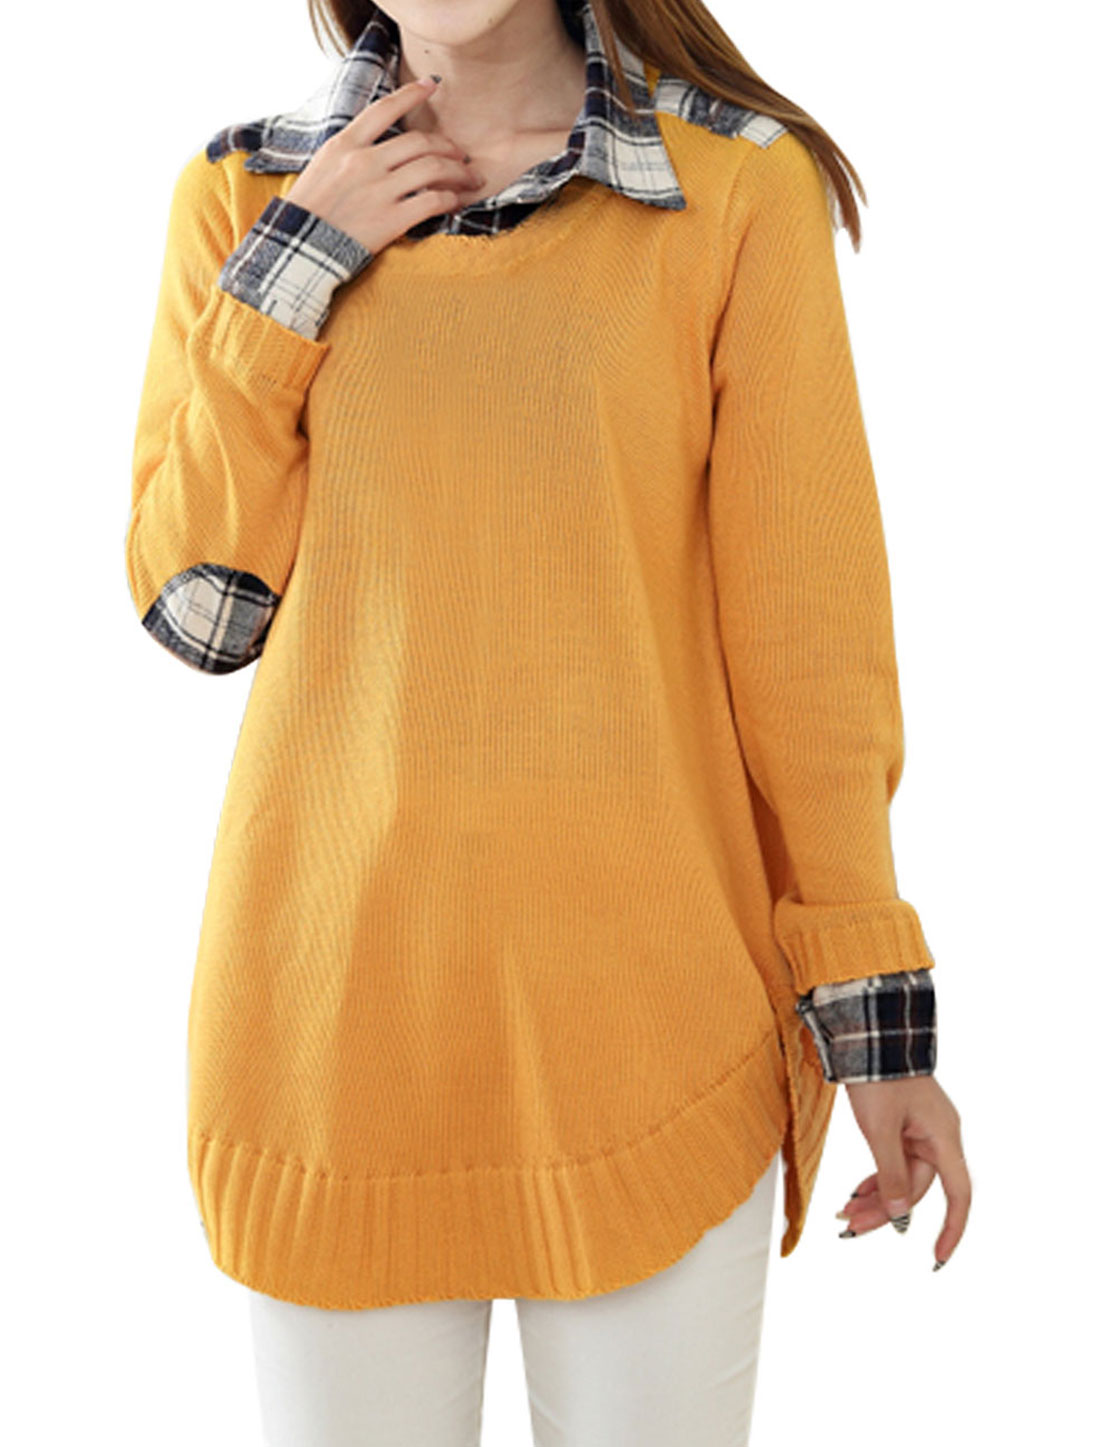 Lady Point Collar Long Sleeve Pullover Yellow Tunic Knit Sweater M